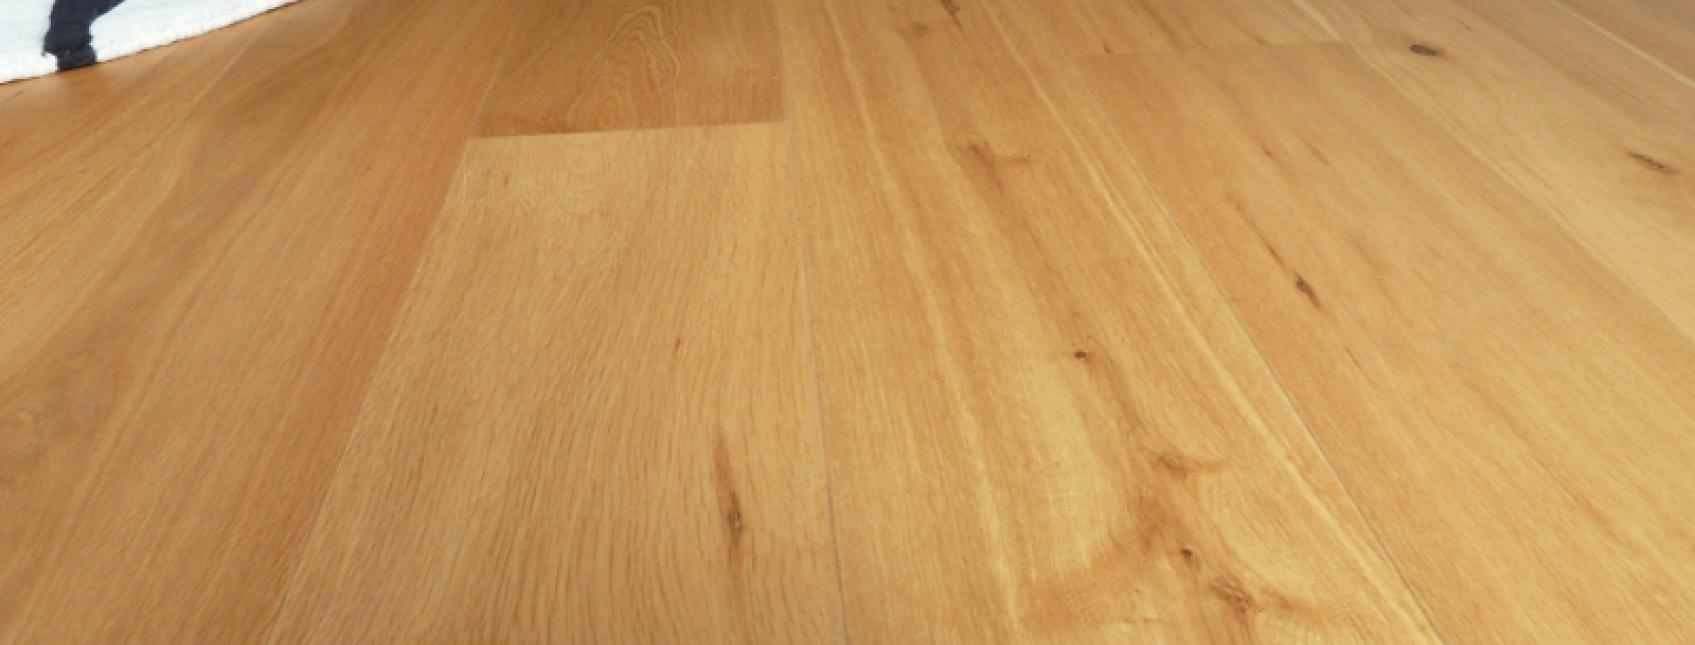 Treatex Oil for Wooden Floors